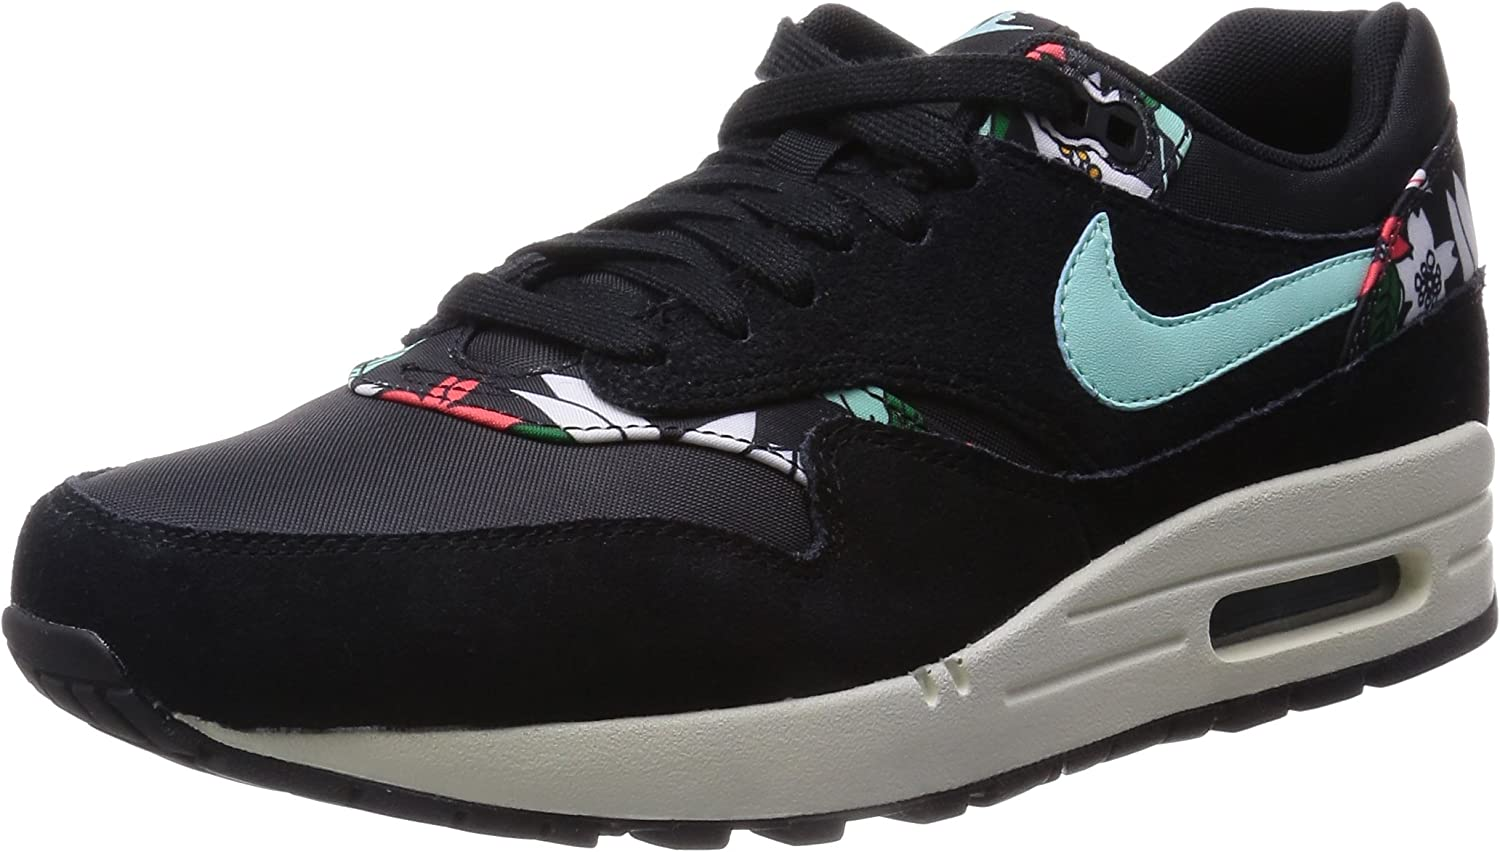 NIKE Womens AIR MAX 1 Print Running Shoes Black Artisan Teal 528898 003 SZ 8